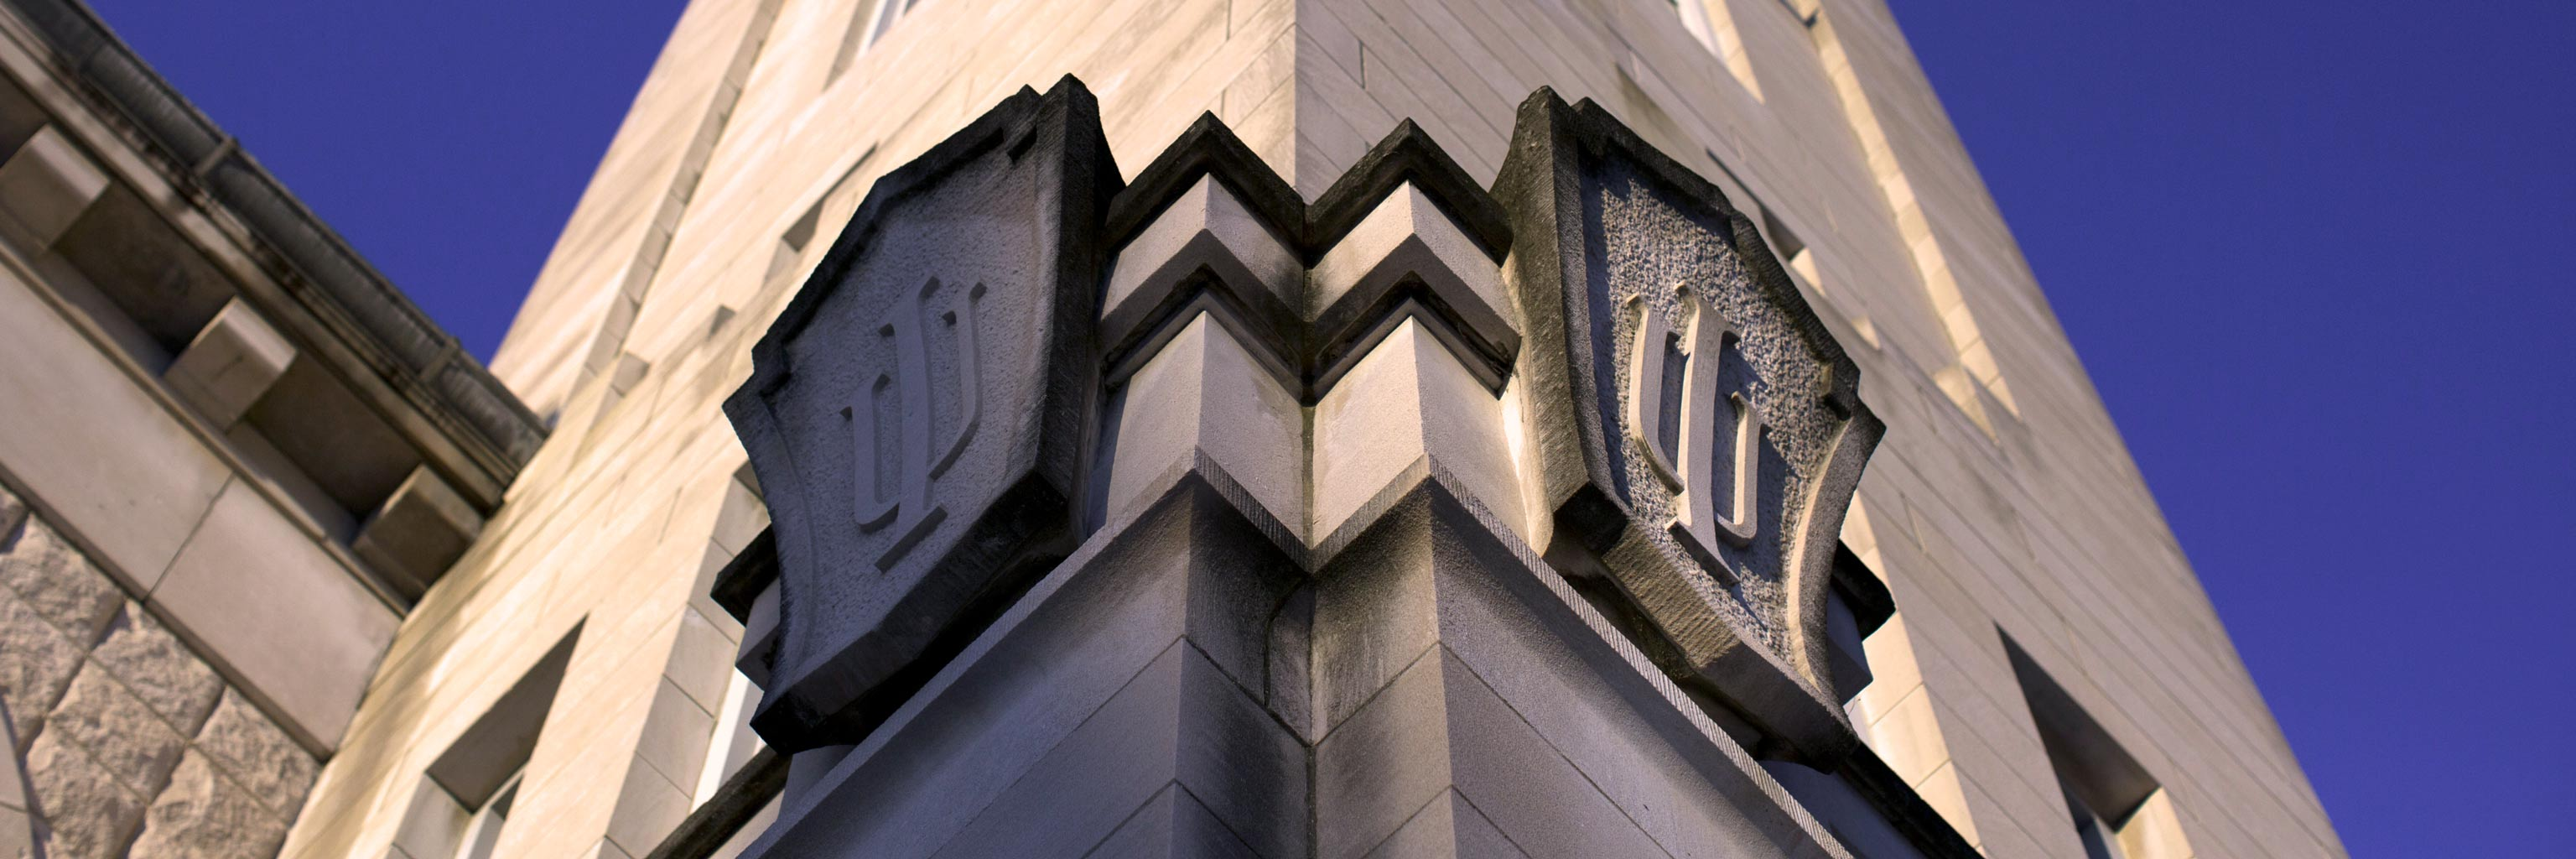 IU trident carved into the exterior of a limestone building